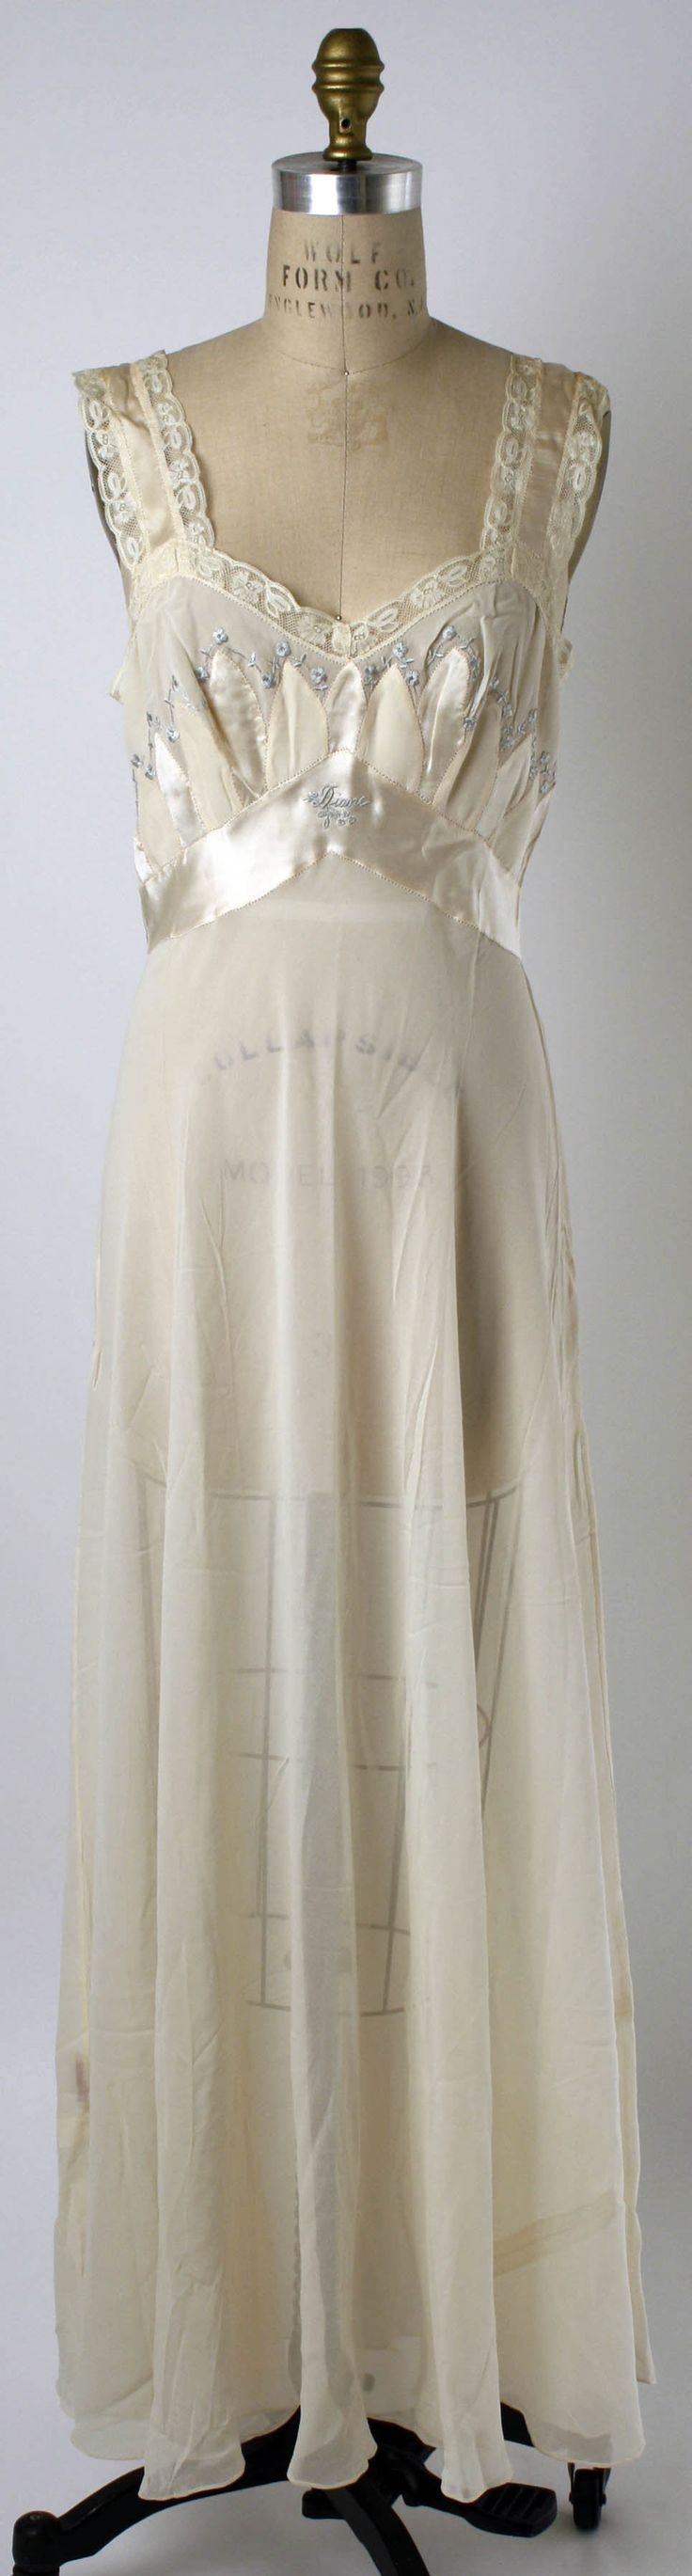 "Nightgown, Reginé Brenner: 1952, American, silk. Marking: [label] ""Lingerie/Reginé Brenner/New York"""